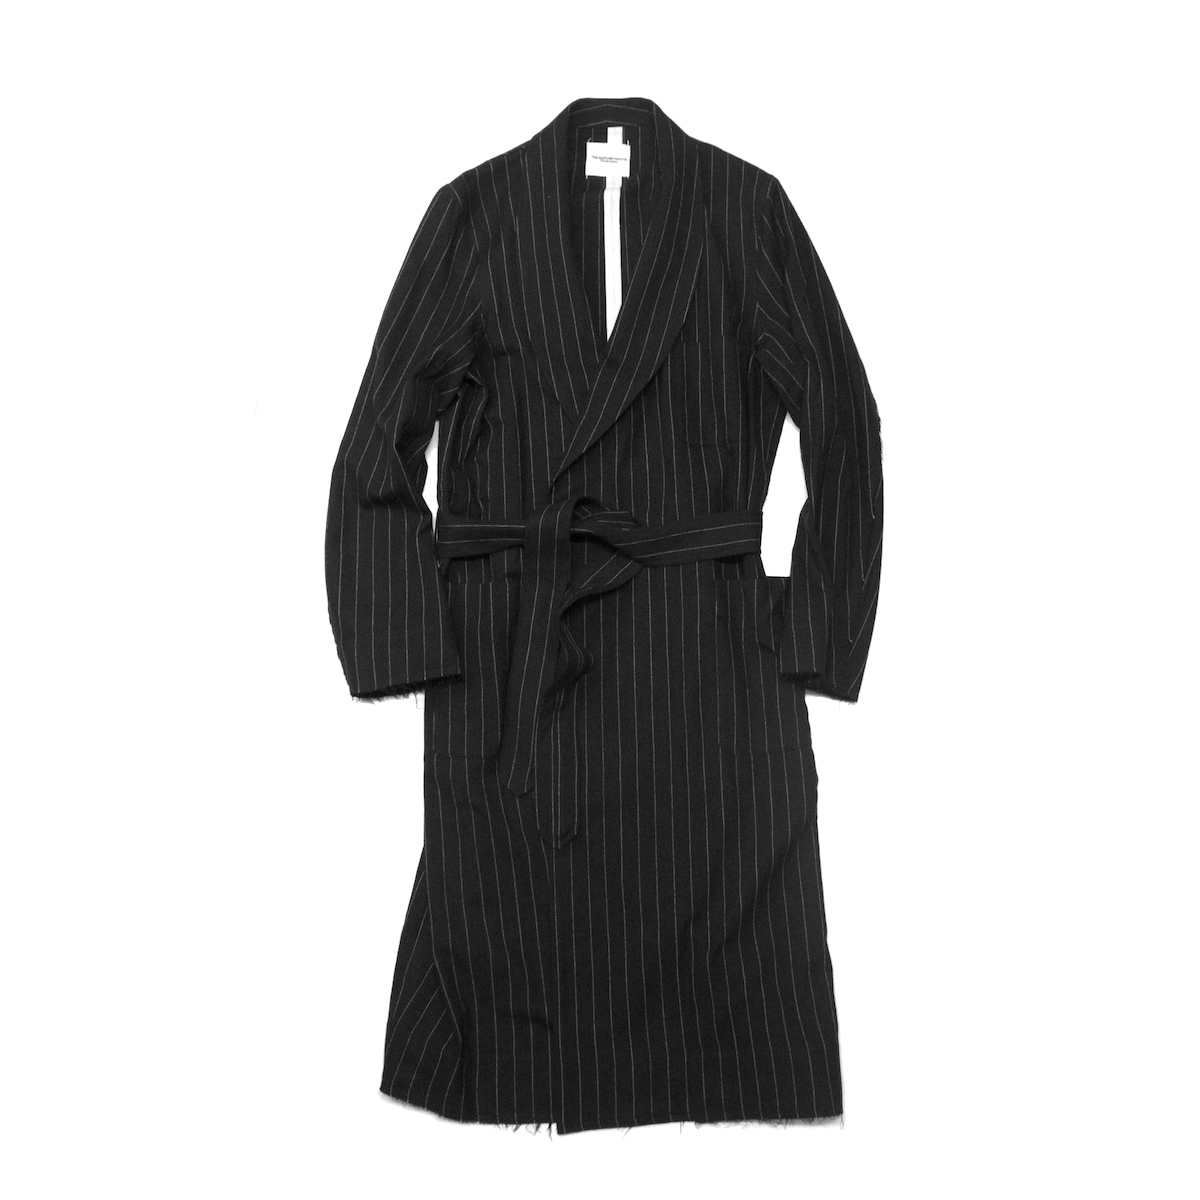 TheSoloist / swj.0018bAW18 robe pajama shirt. (black.×white.)